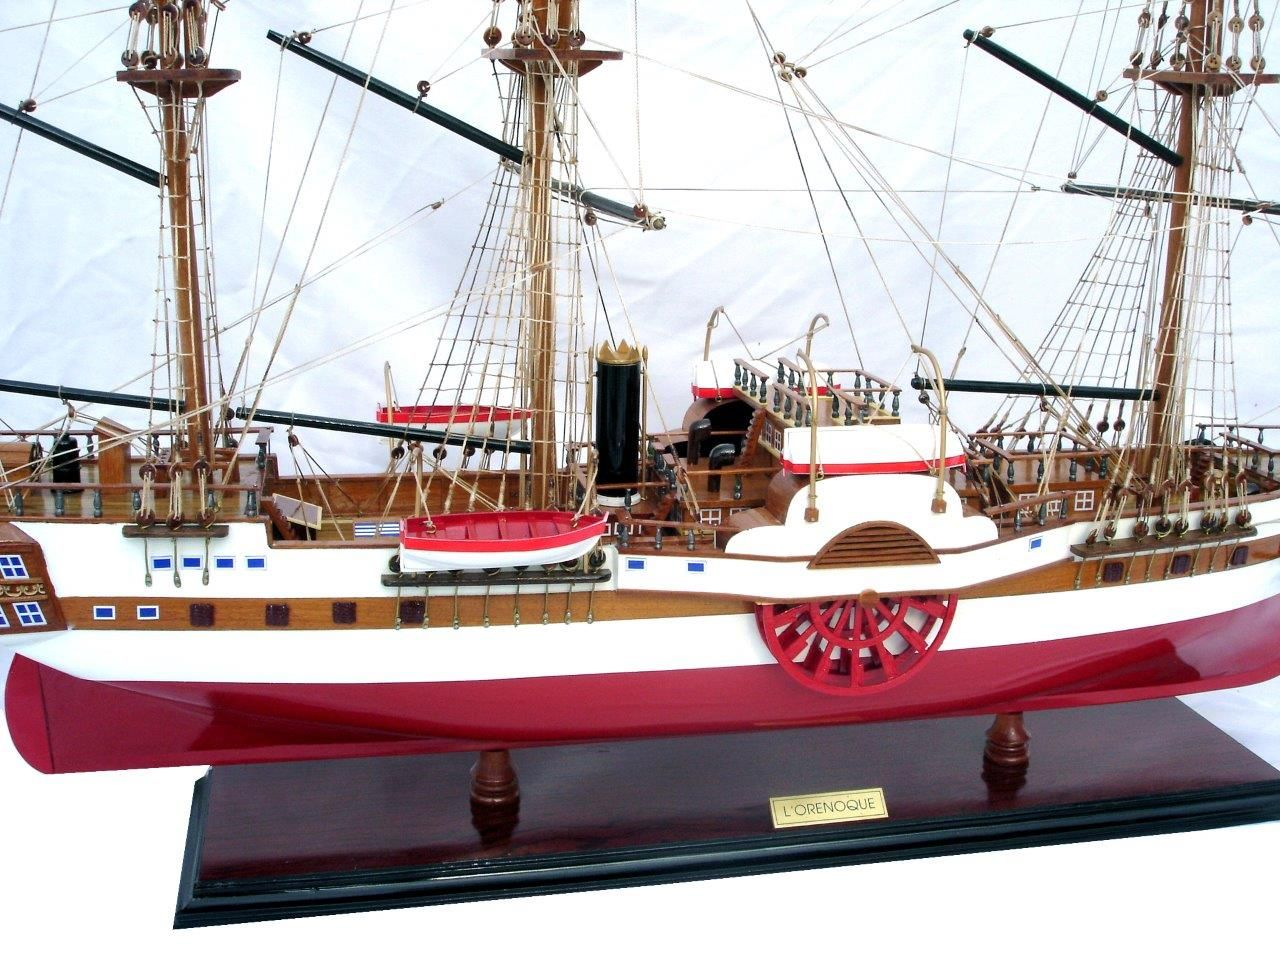 2075-12309-LOrenoque-Wooden-Model-Ship (1)